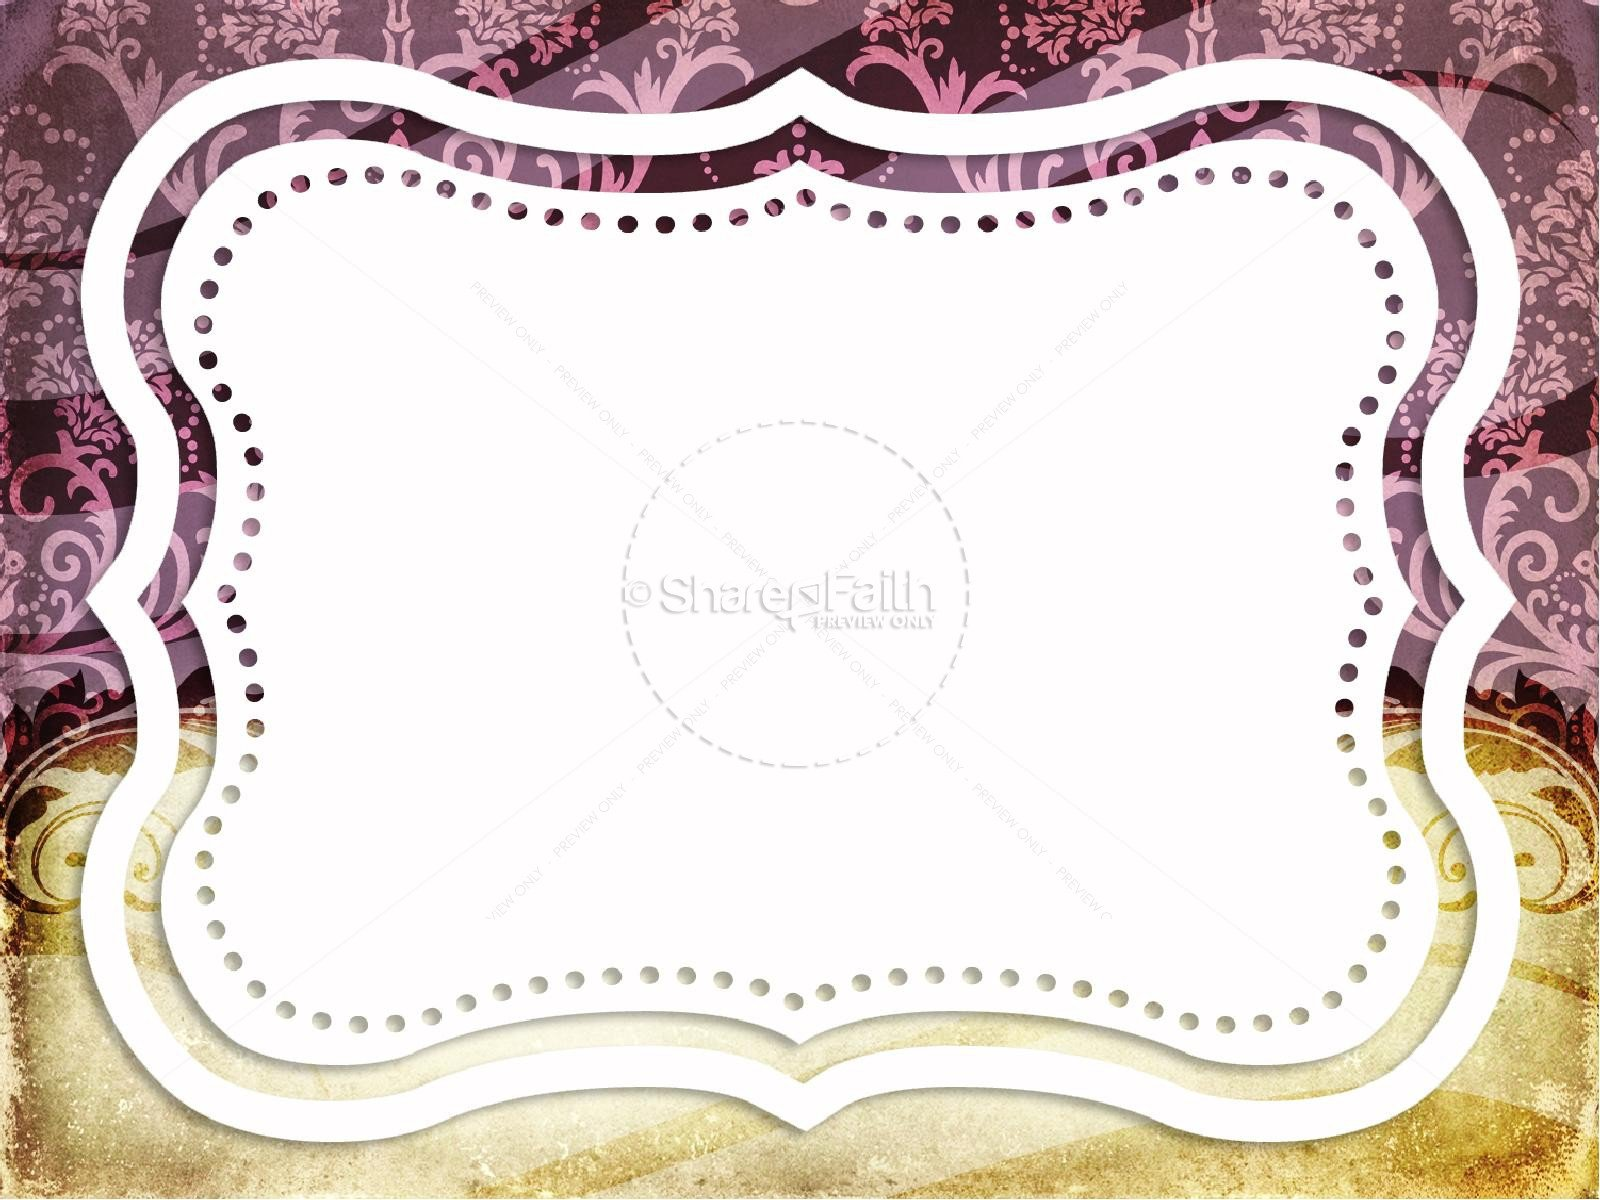 Printable Invitations Walgreens